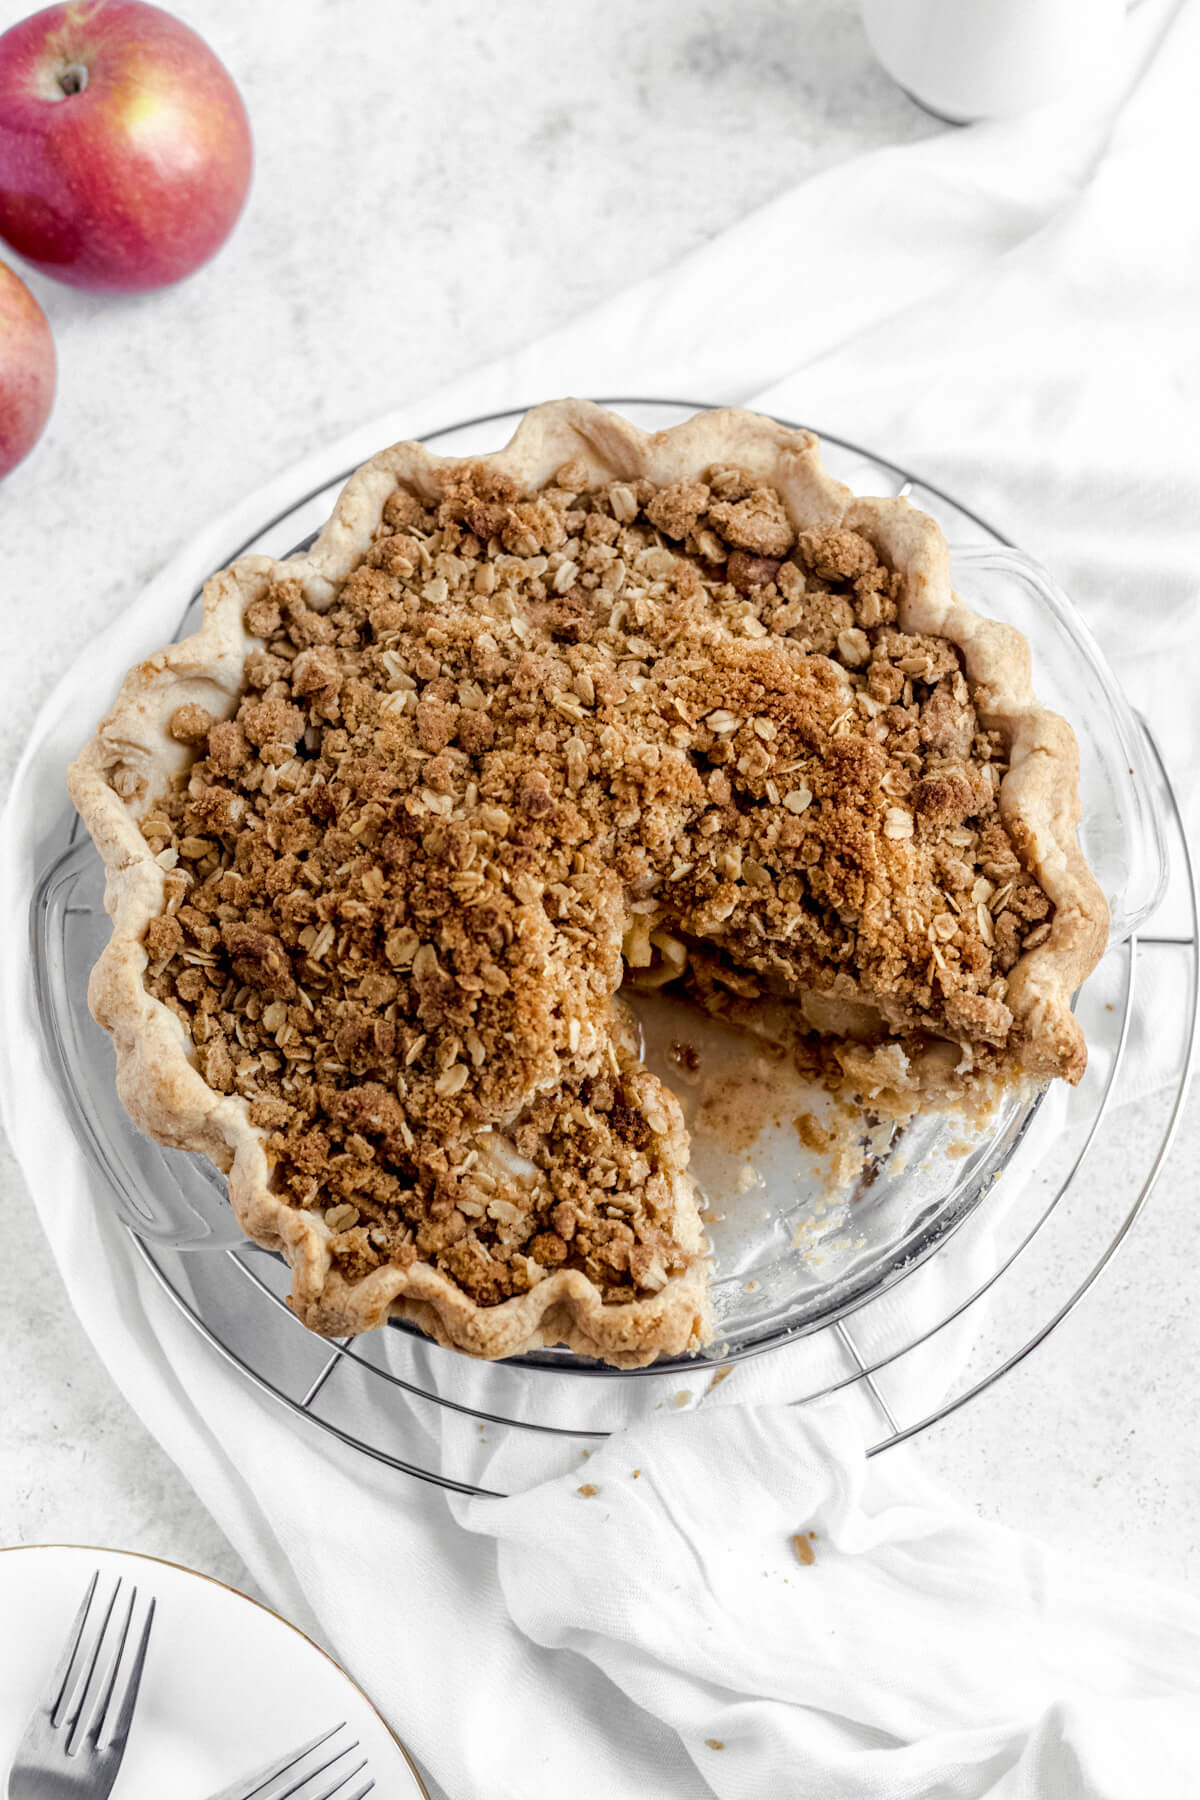 crumble topped apple pie with a slice taken out